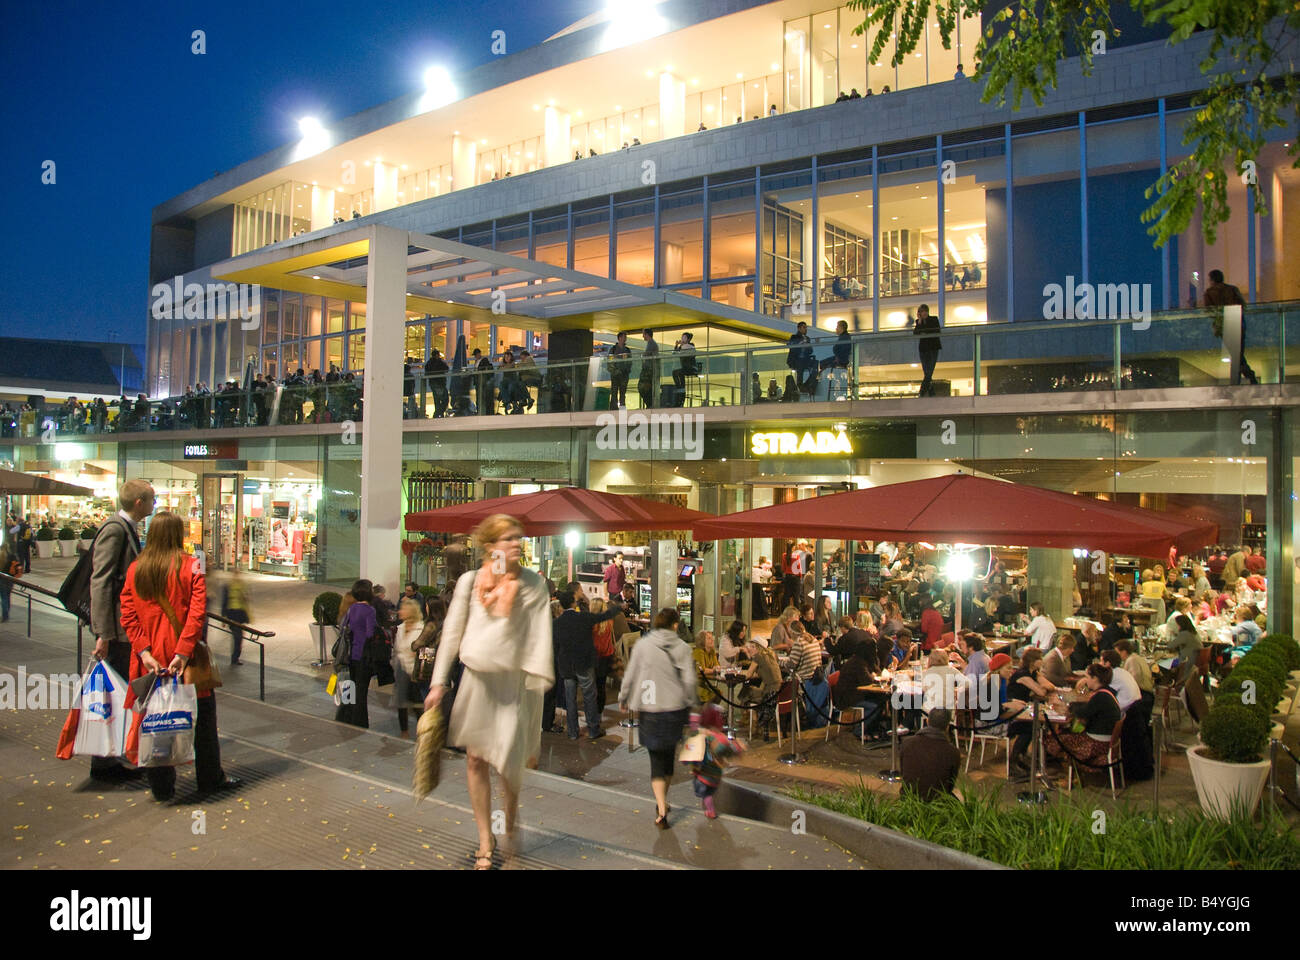 Restaurants And Bar Outside The Royal Festival Hall On The South